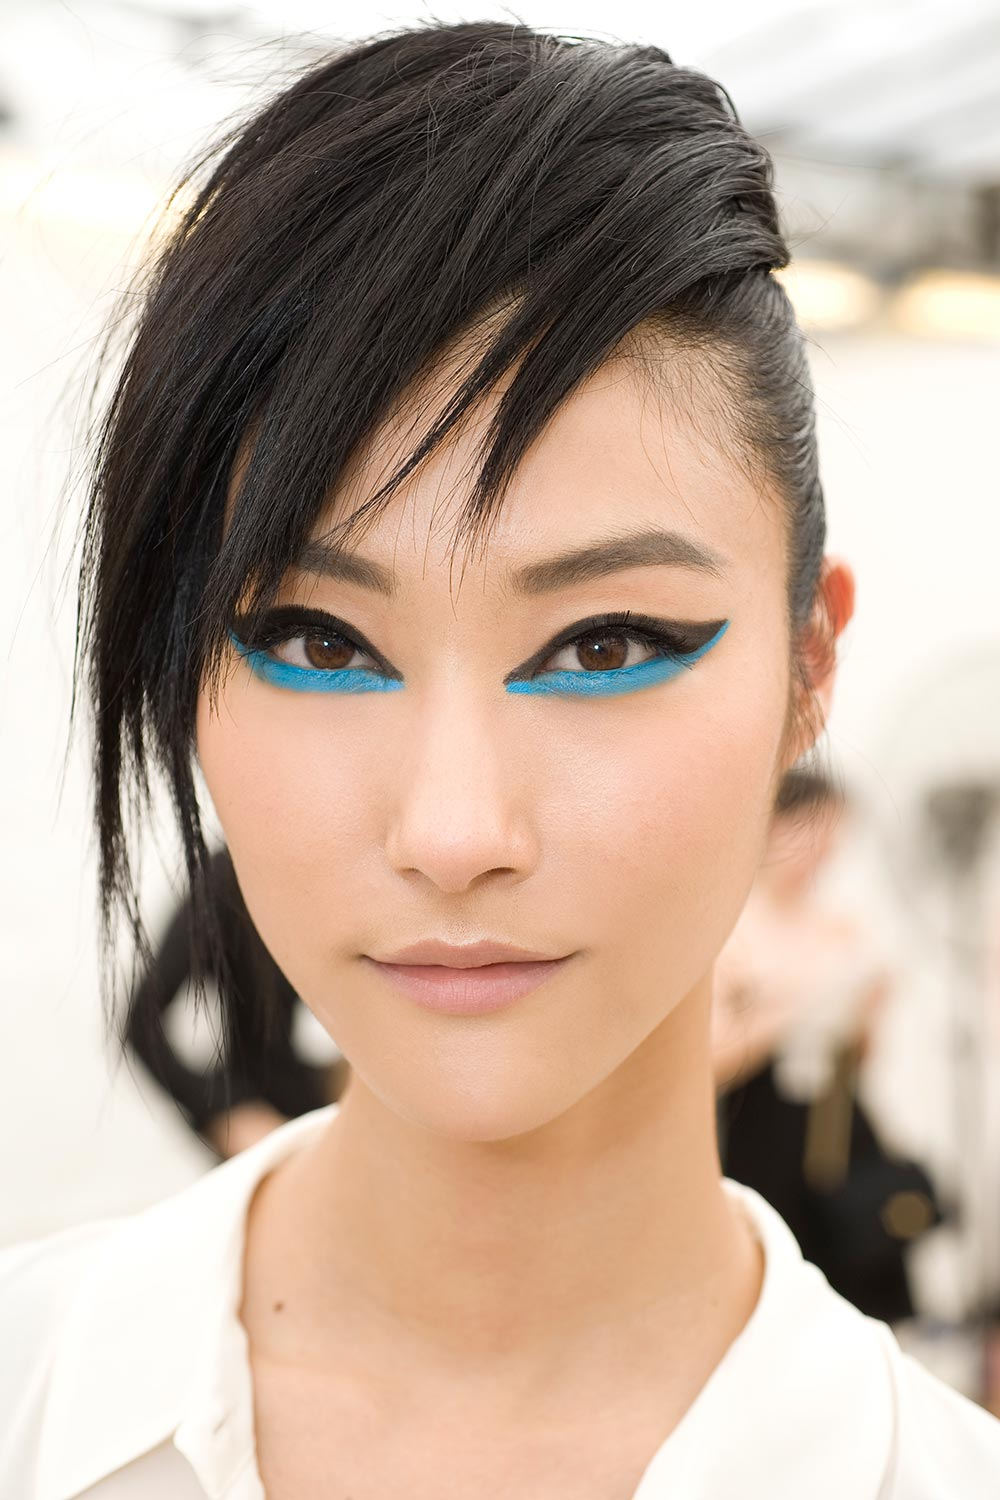 Chanel Resort 2014 Runway Makeup